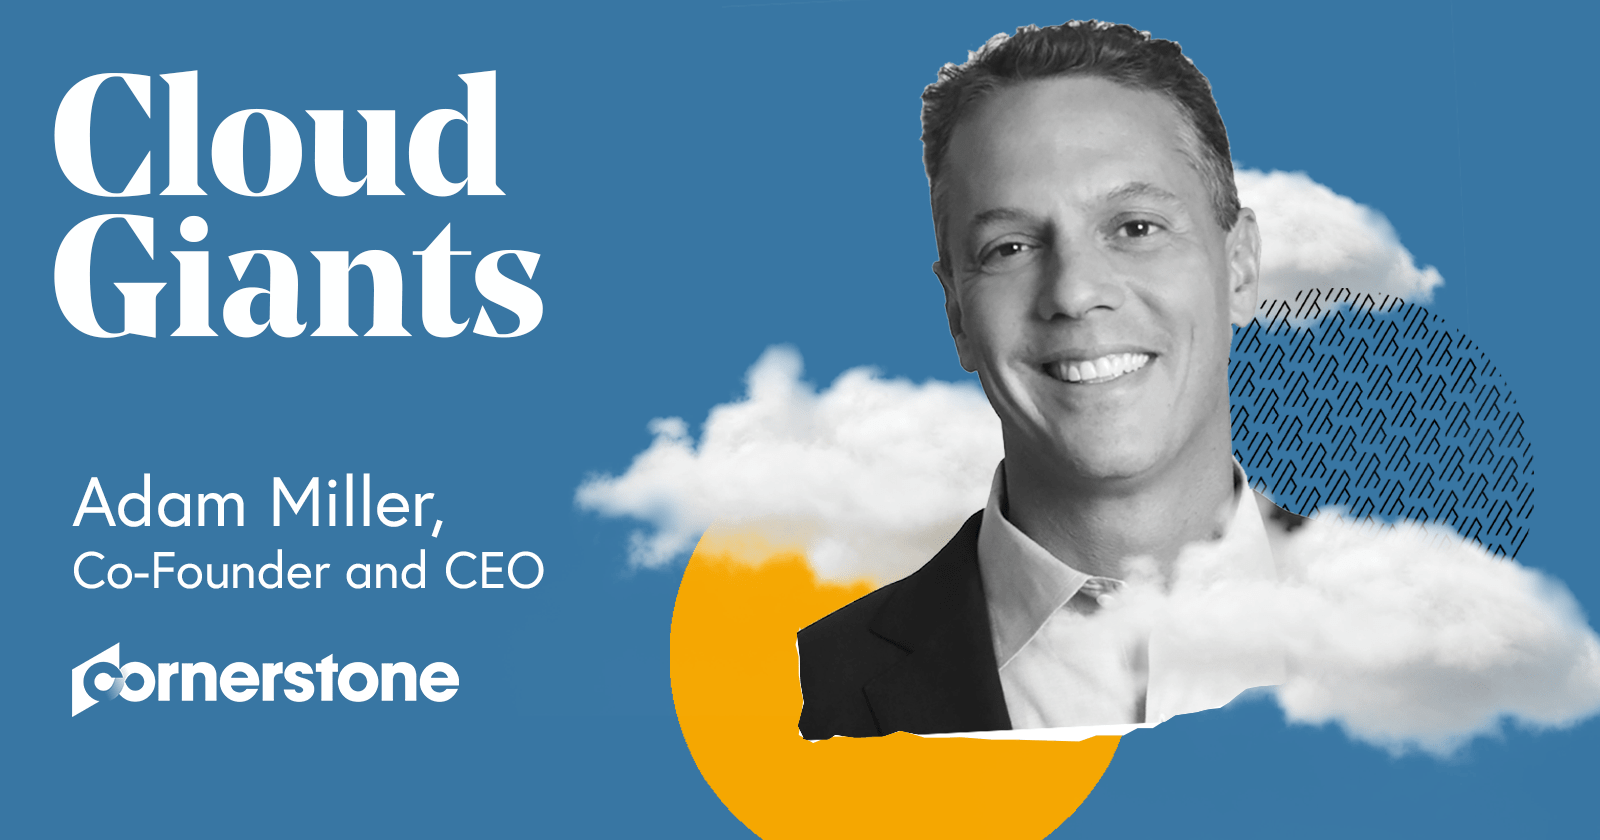 Cloud Giants Adam Miller Co-founder and CEO of Cornerstone onDemand